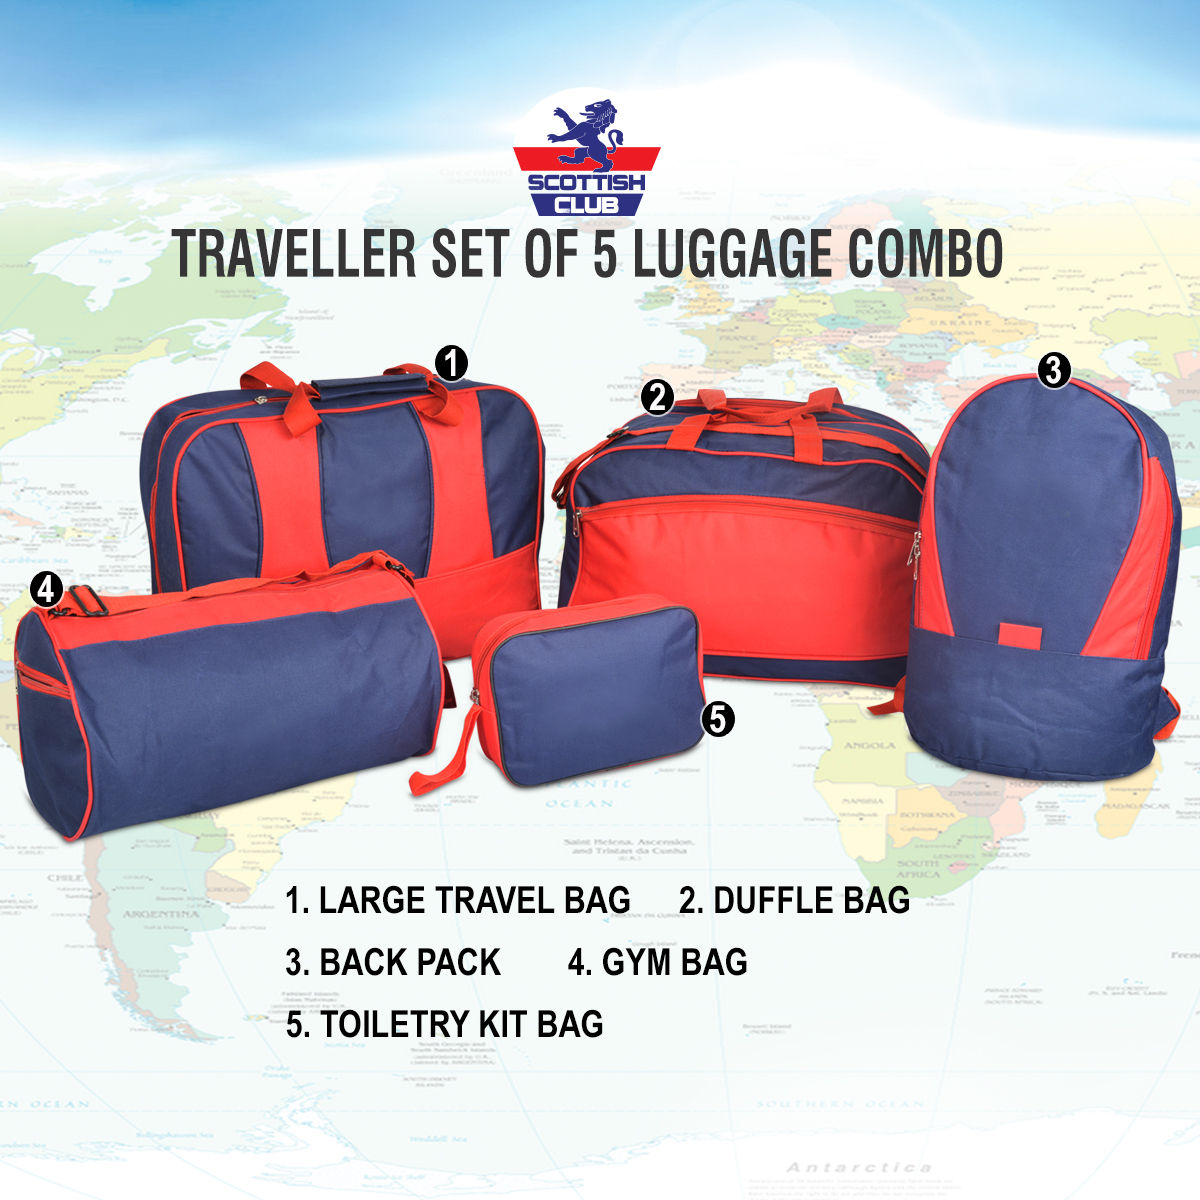 Buy Traveller Set of 5 Luggage Combo Online at Best Price in India on  Naaptol.com fb135276c31a8